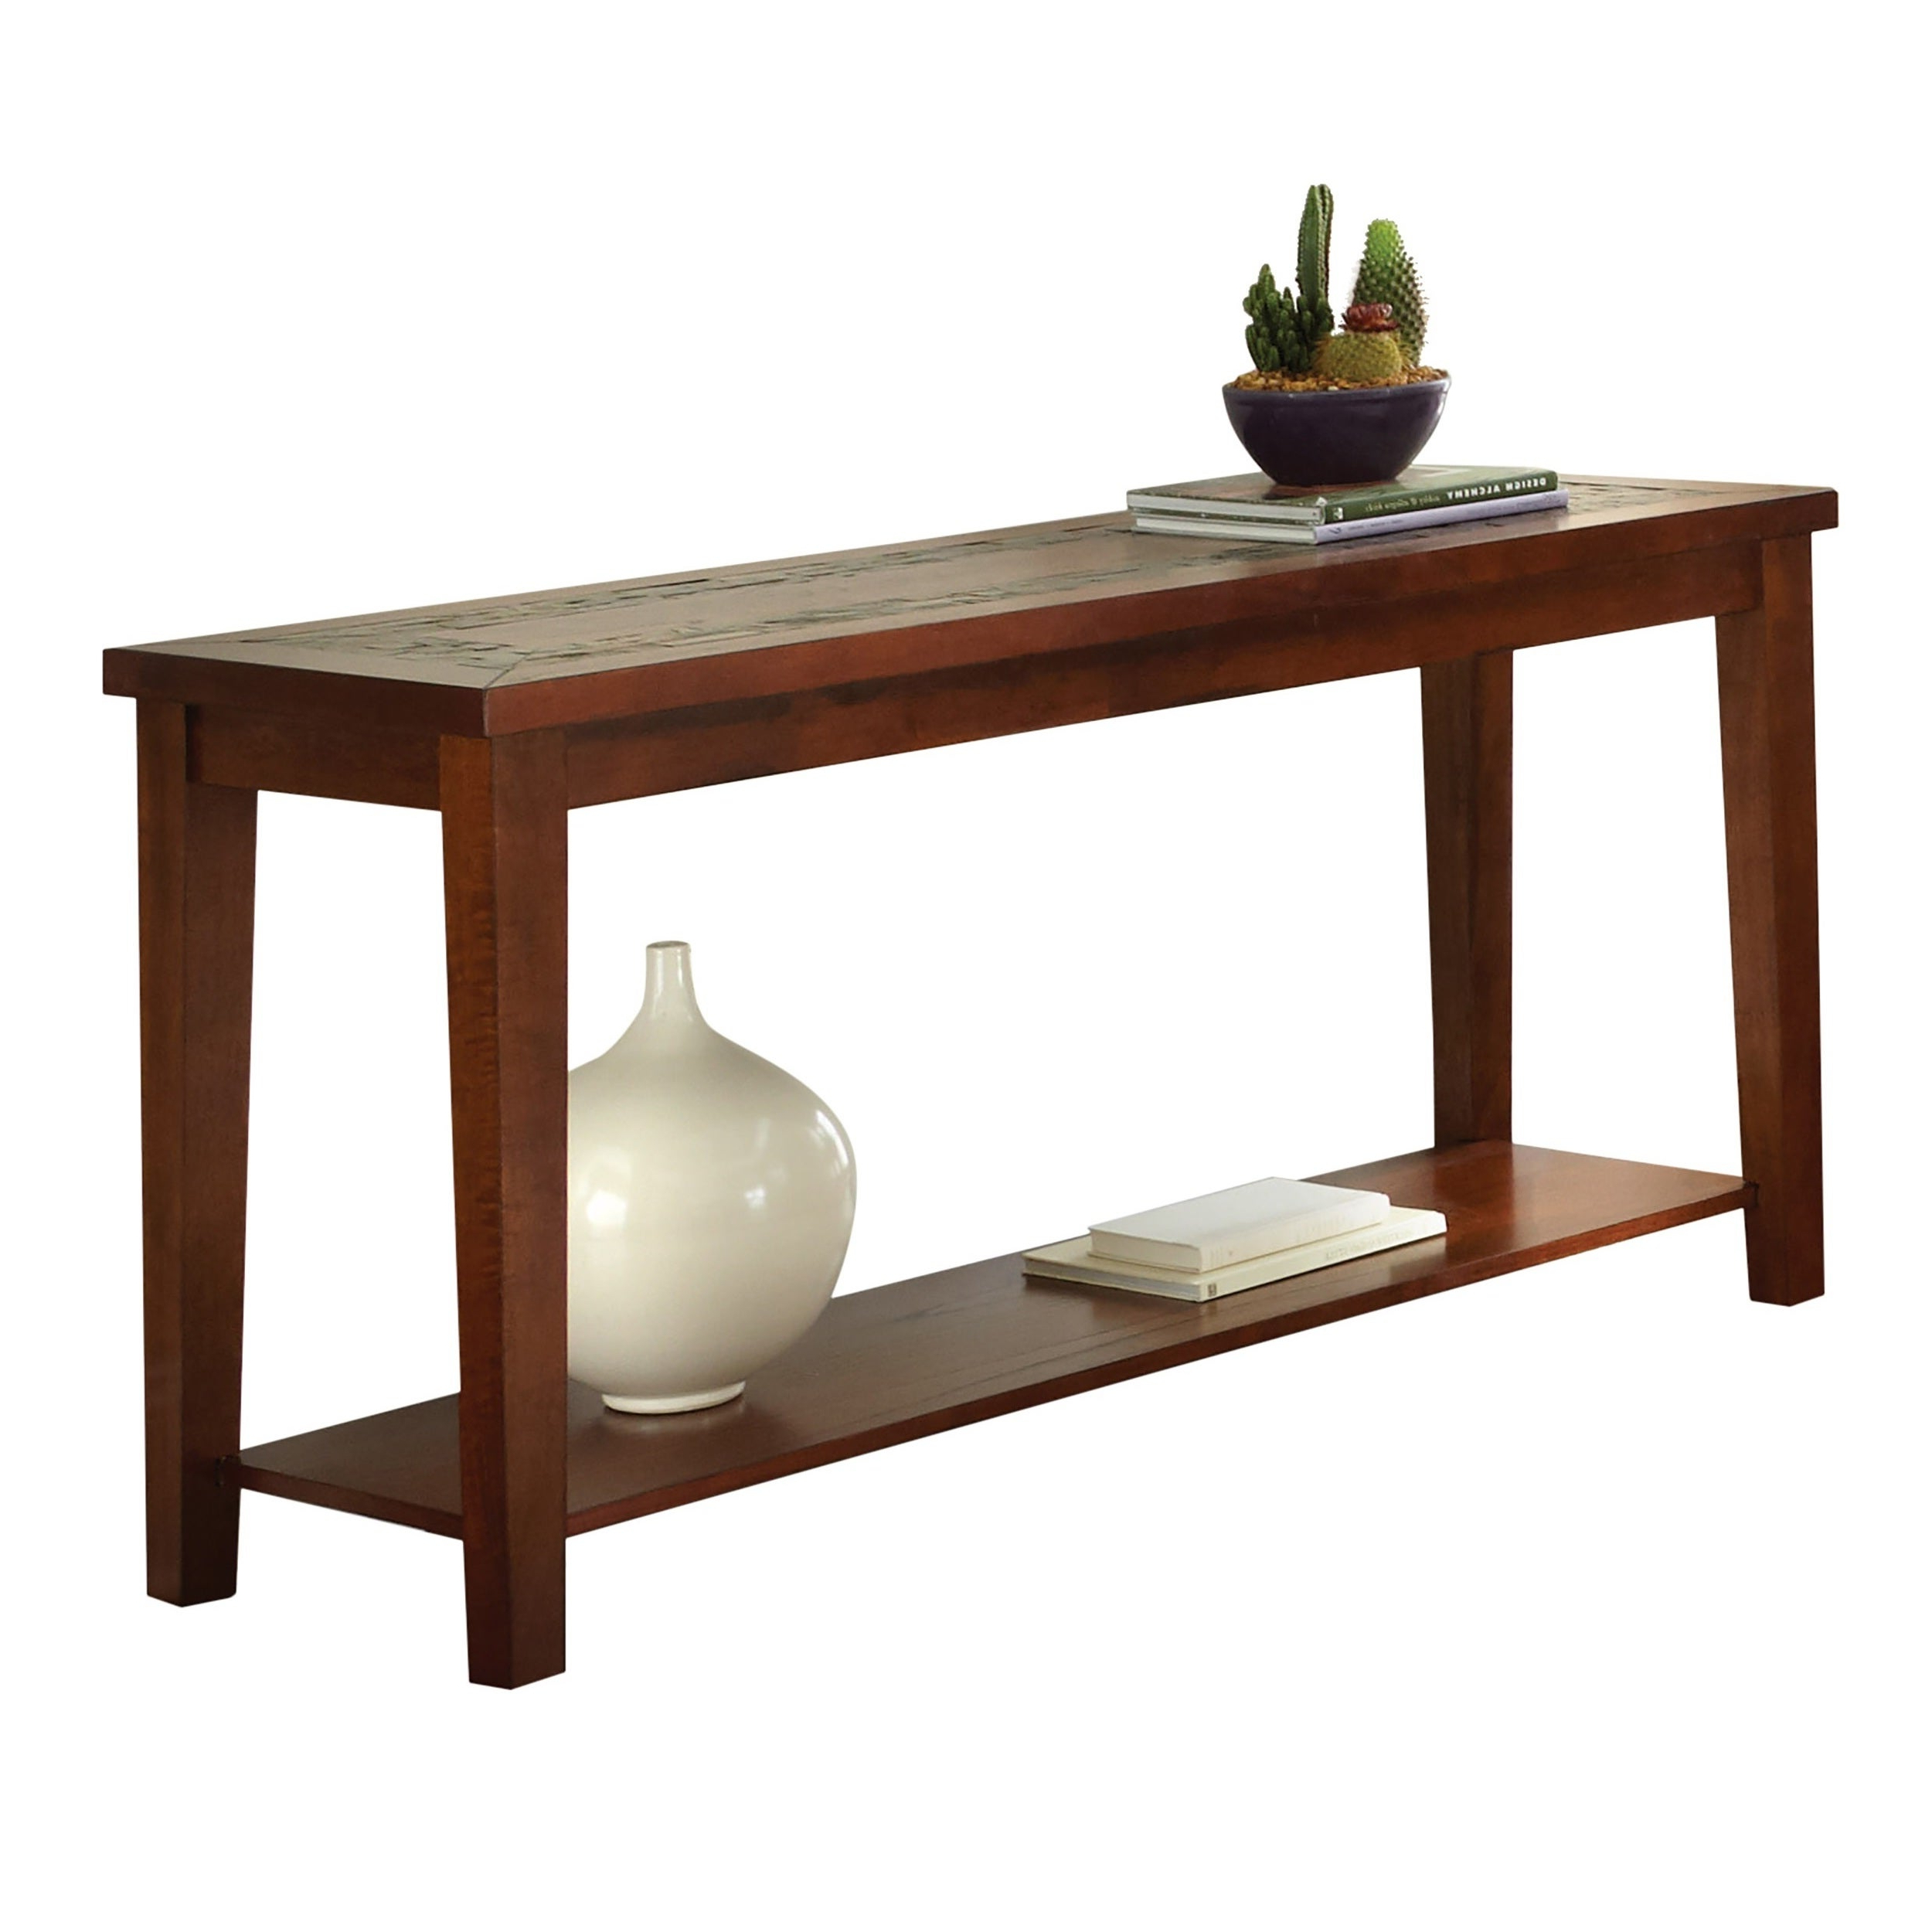 Greyson Living Plymouth Sofa Table In Most Up To Date Copper Grove Ixia Rustic Oak And Slate Tile Coffee Tables (Gallery 18 of 20)